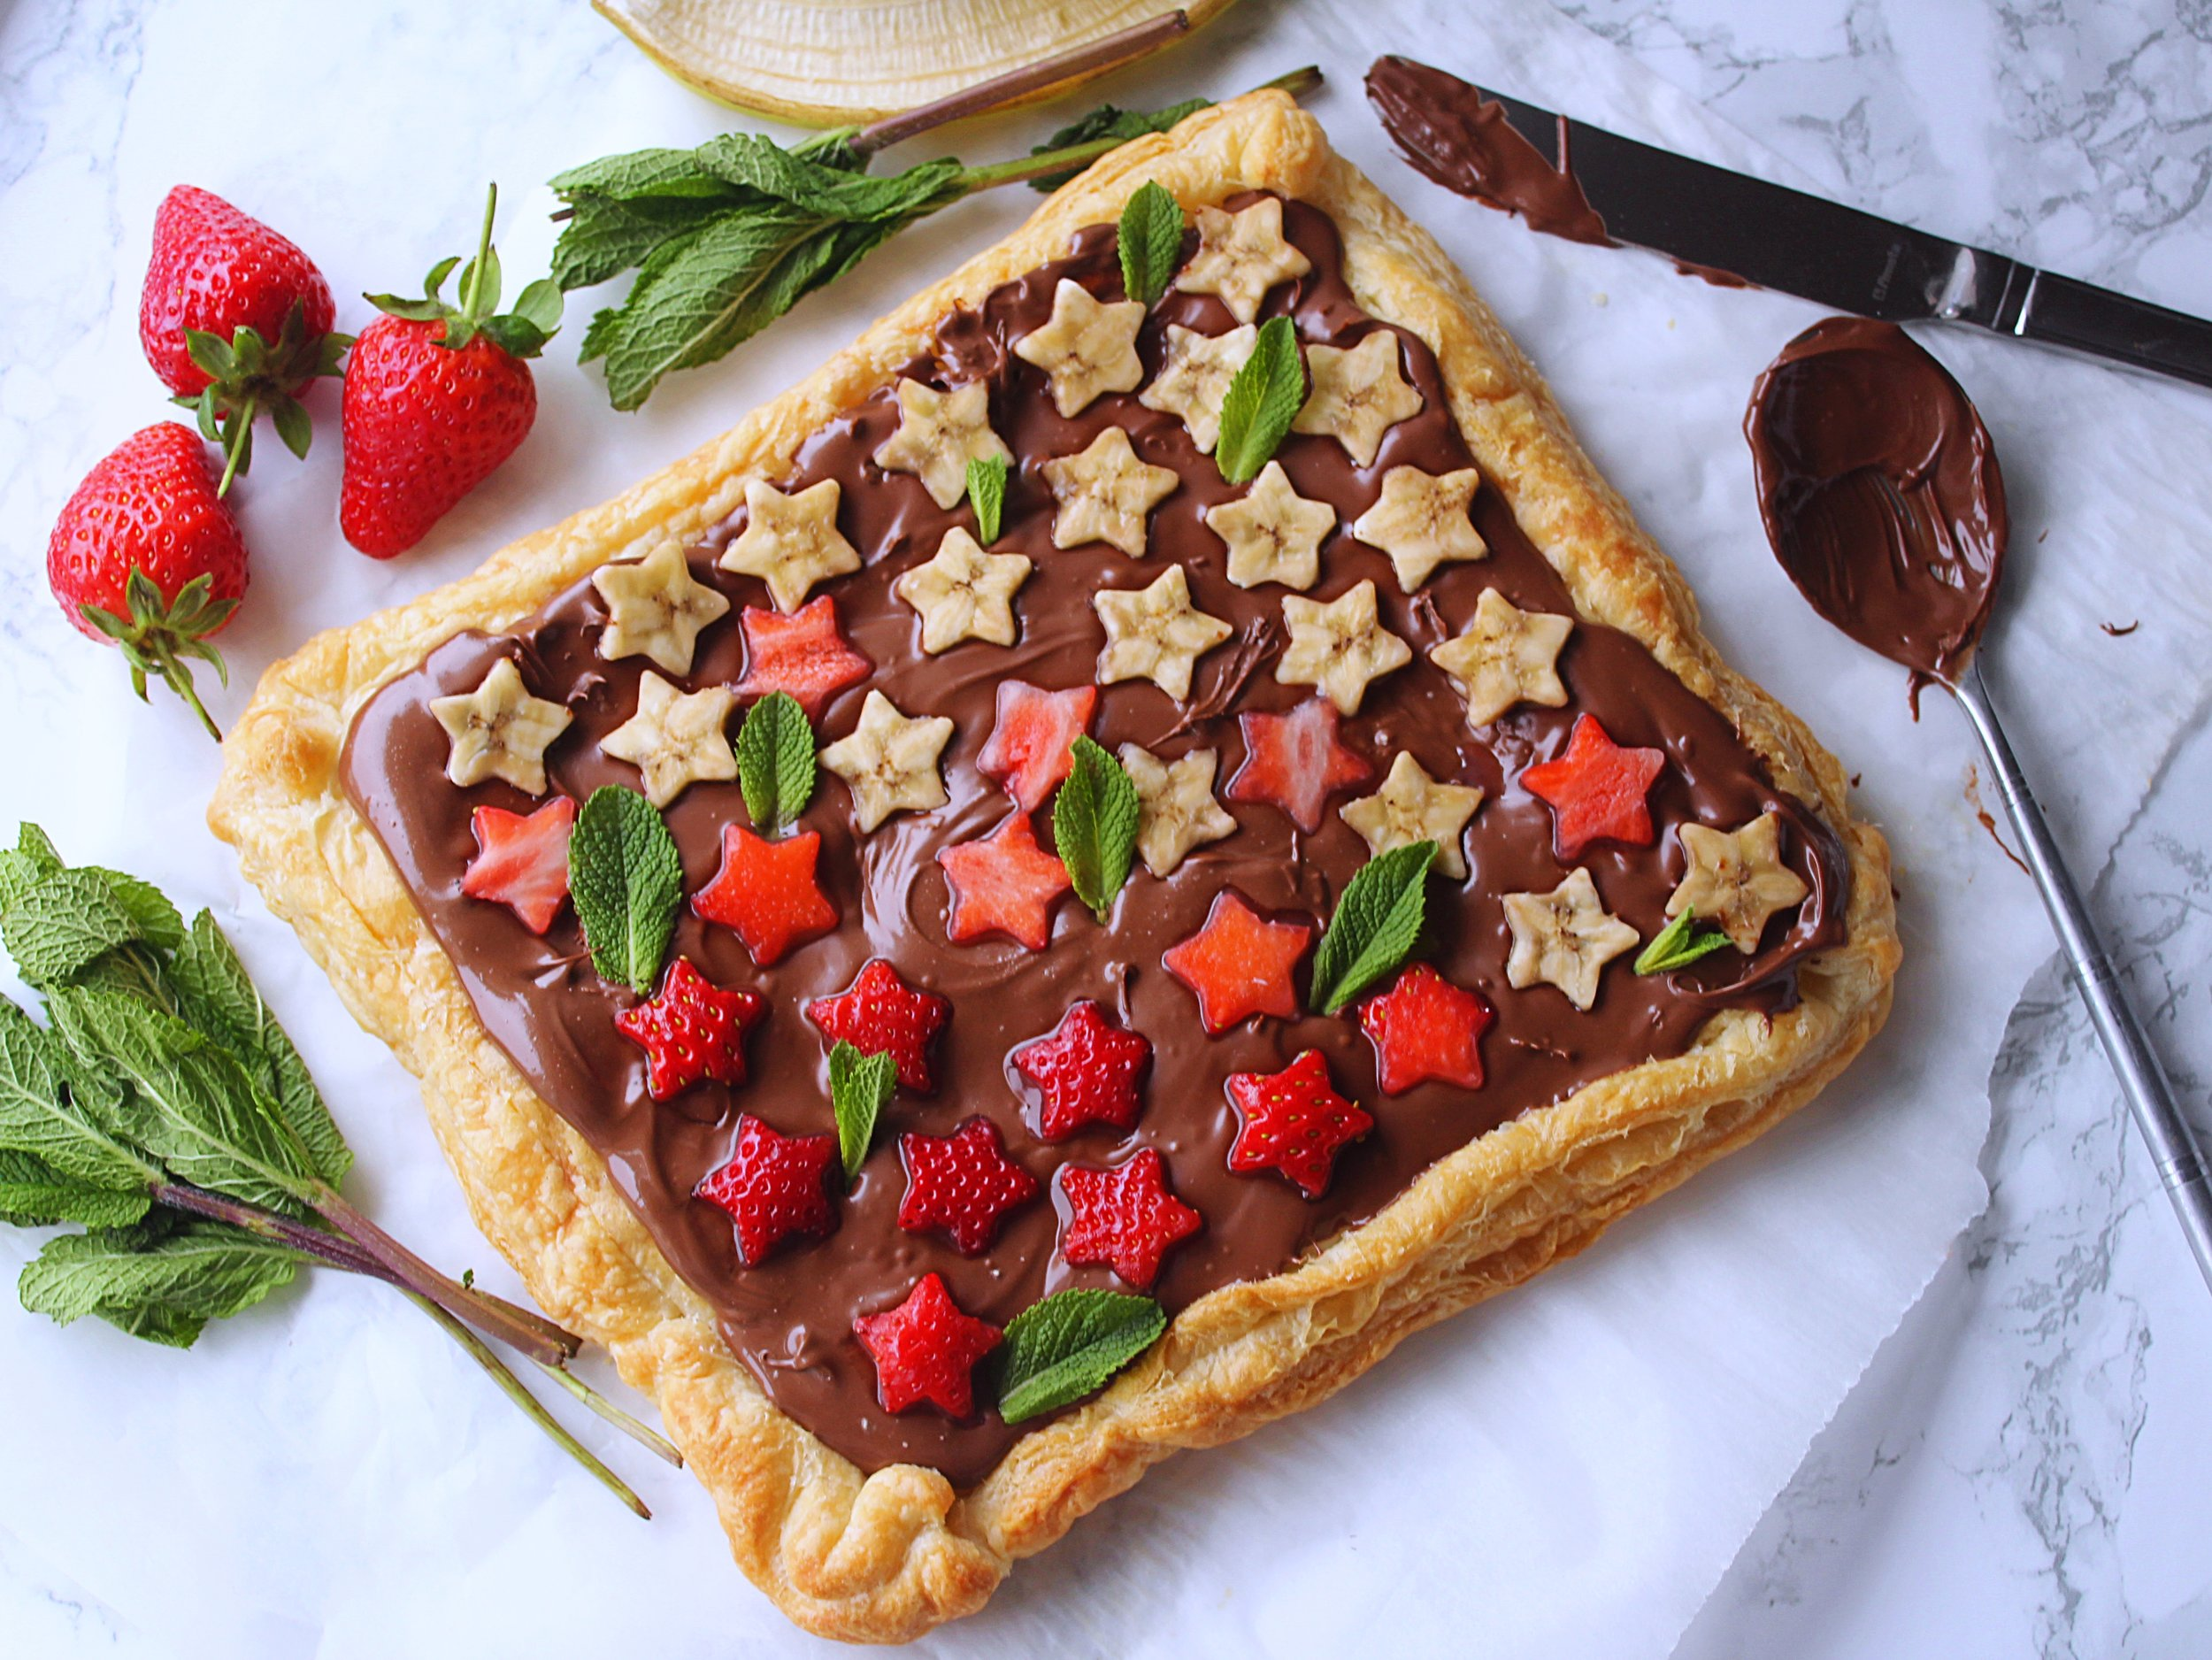 Nutella pie  - By Hungry PaprikasBake a ready rolled puff pastry dough (pricked with a fork) per package instructions. Once ready, let it cool. Then top it with Nutella and fresh fruits.